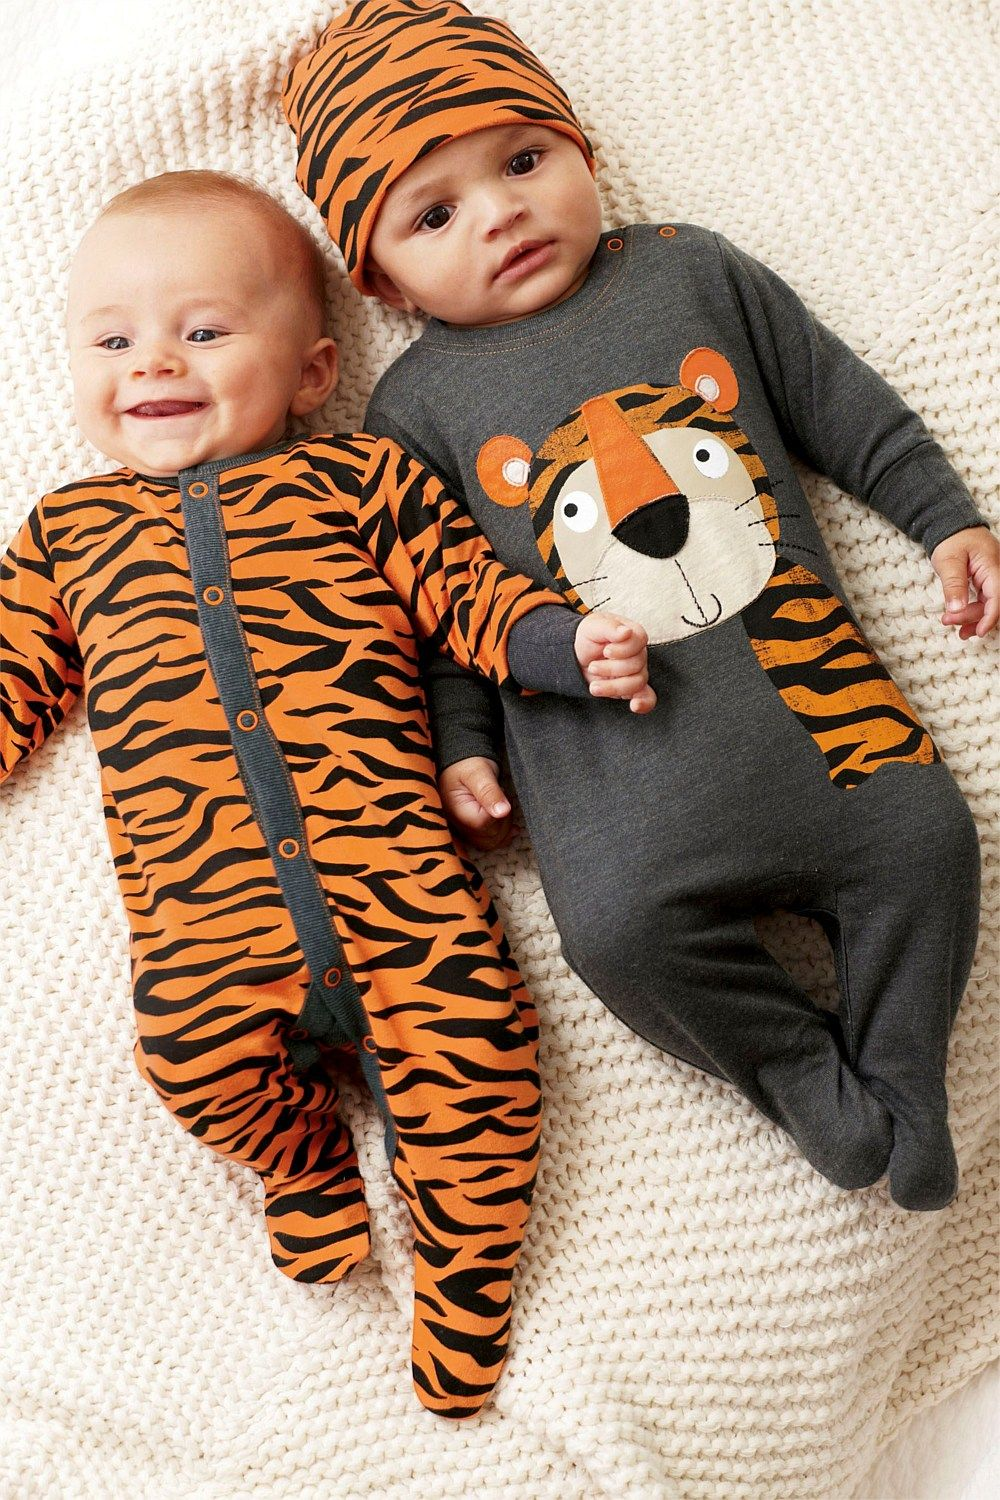 31d95f388a2f Newborn Accessories - Baby Accessories and Infantwear - Next Tiger ...